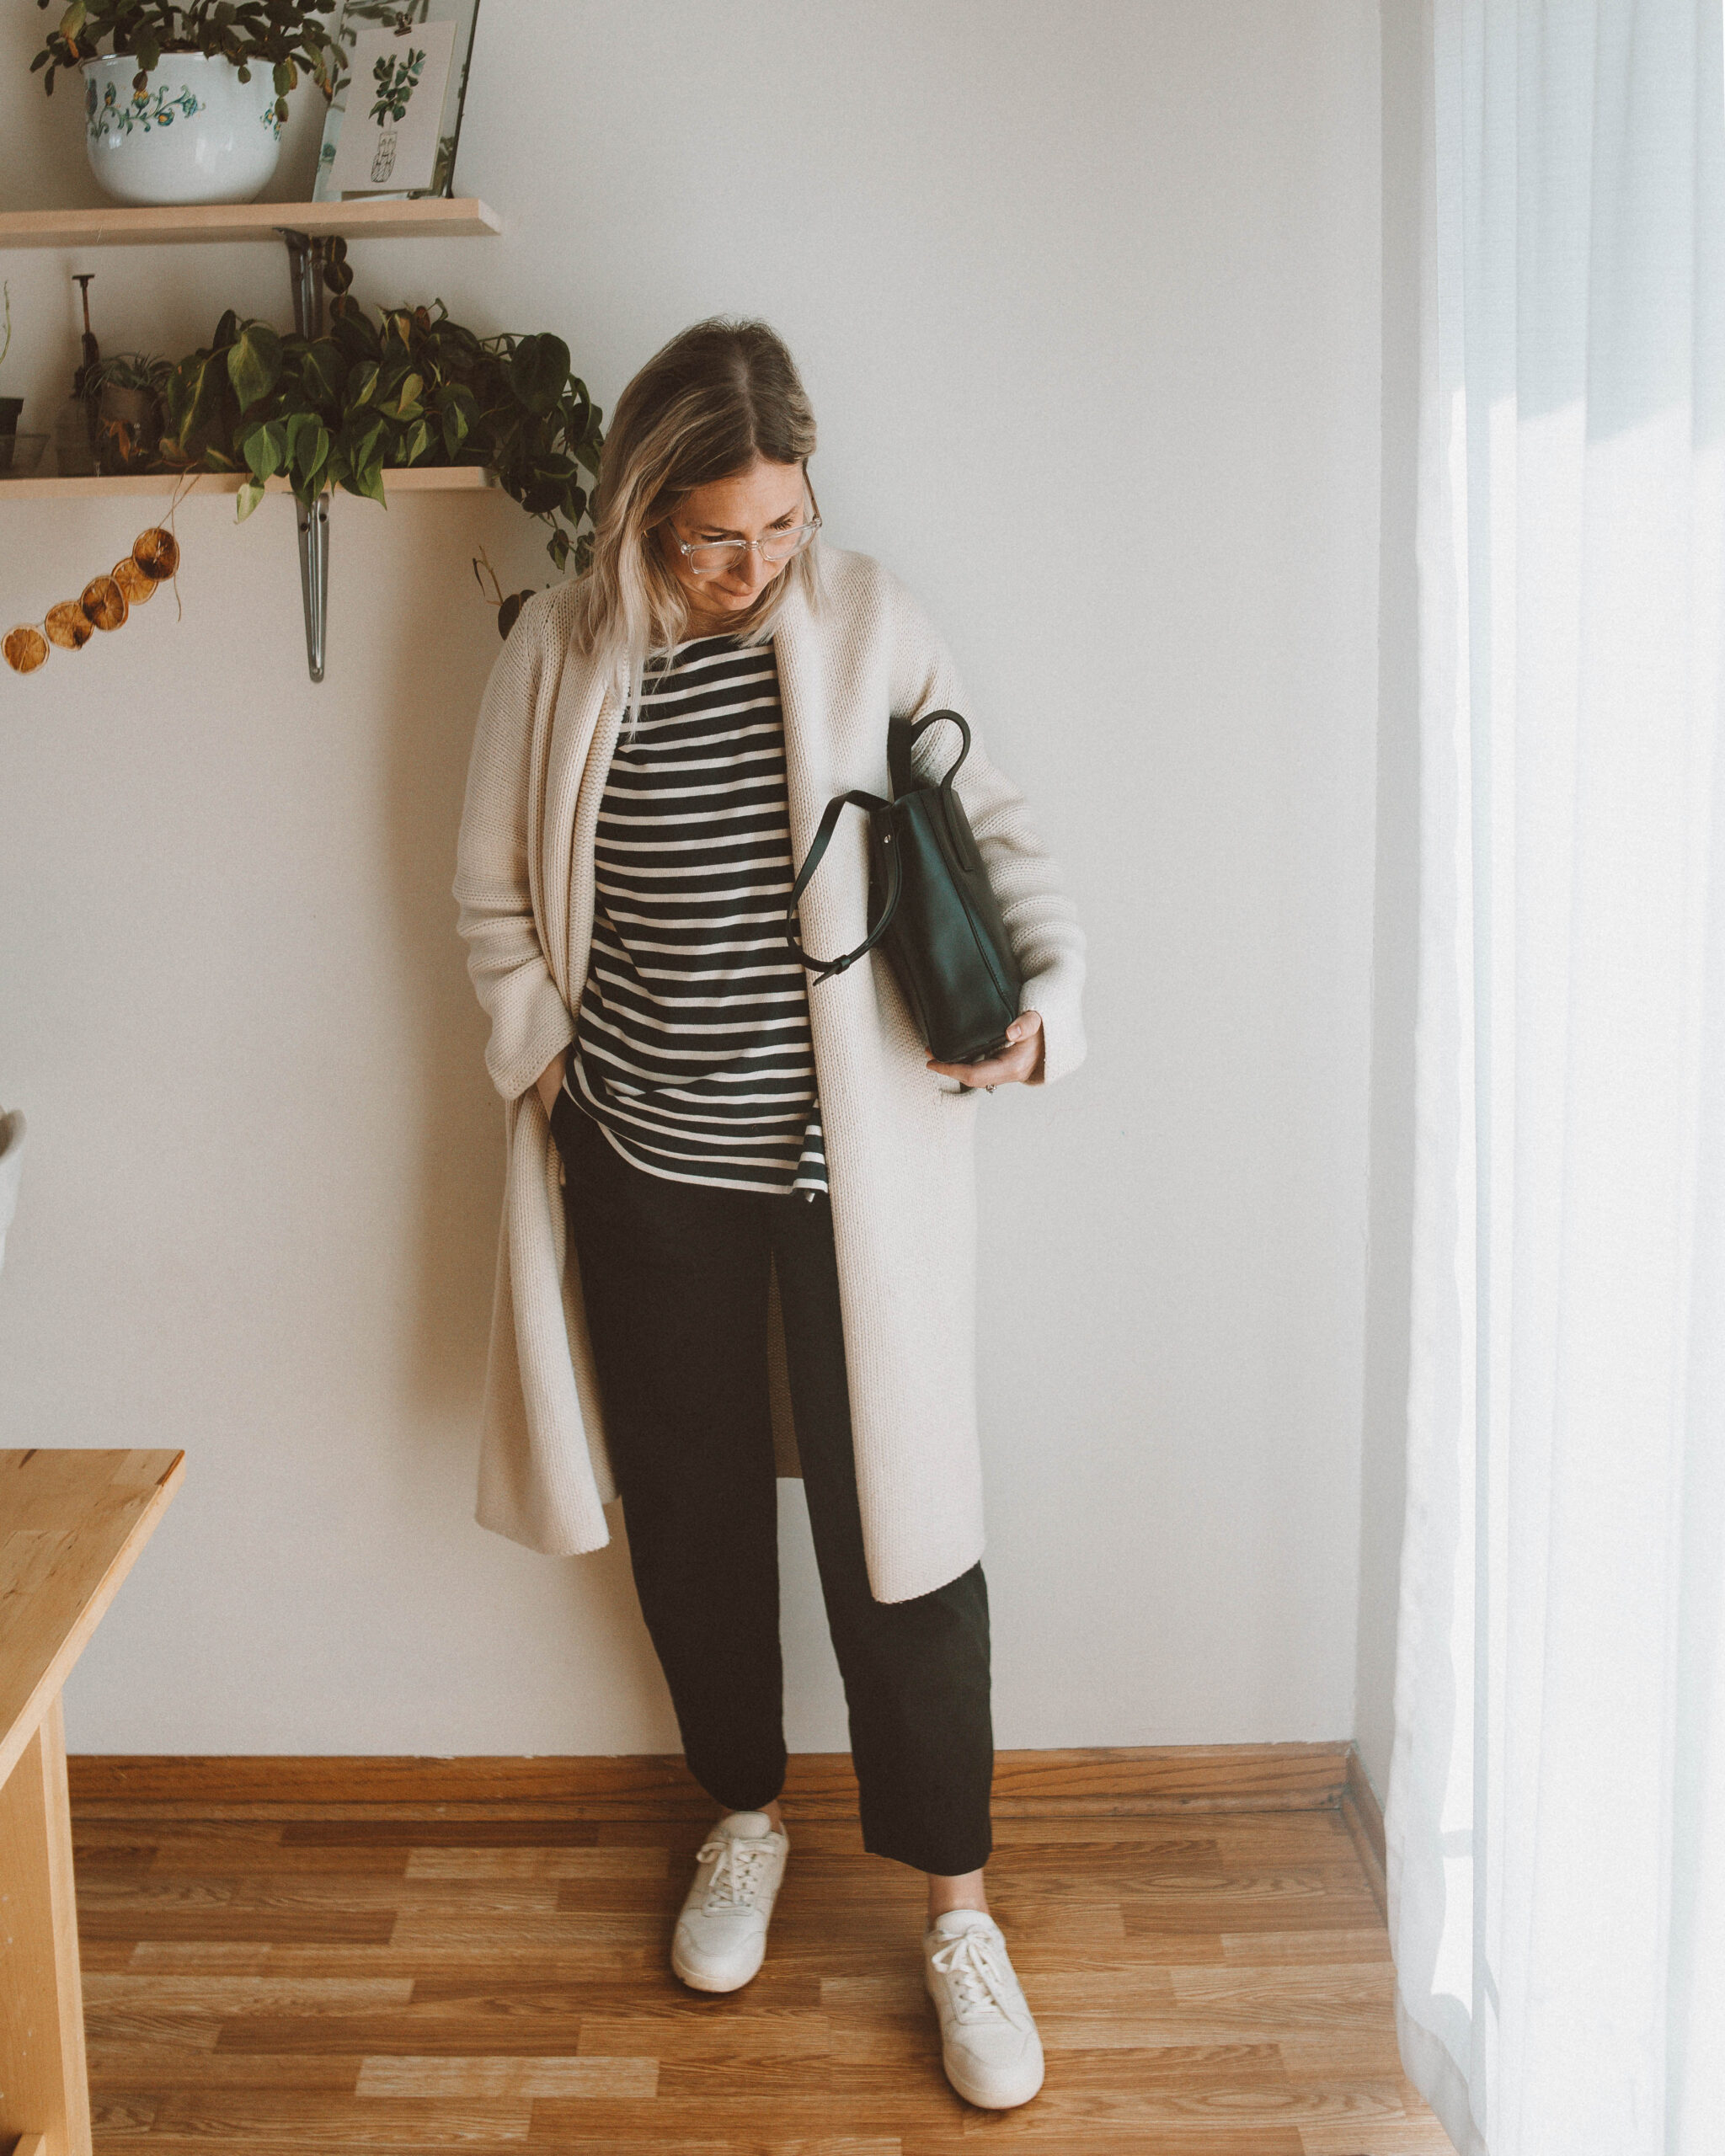 A Week of Nursing Friendly Outfits with Boob Design